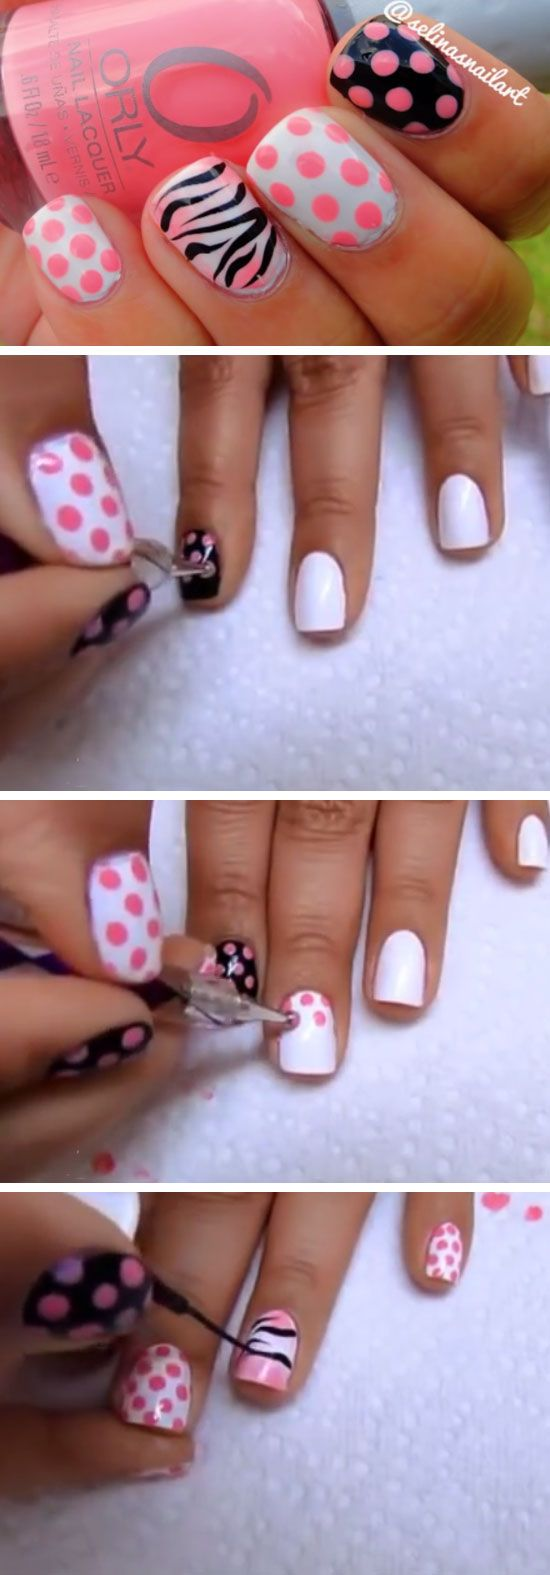 Polka Dot & Zebra Print Nail Art | 18 Easy Summer Nails Designs for Summer | Cute Nail Art Ideas for Teens